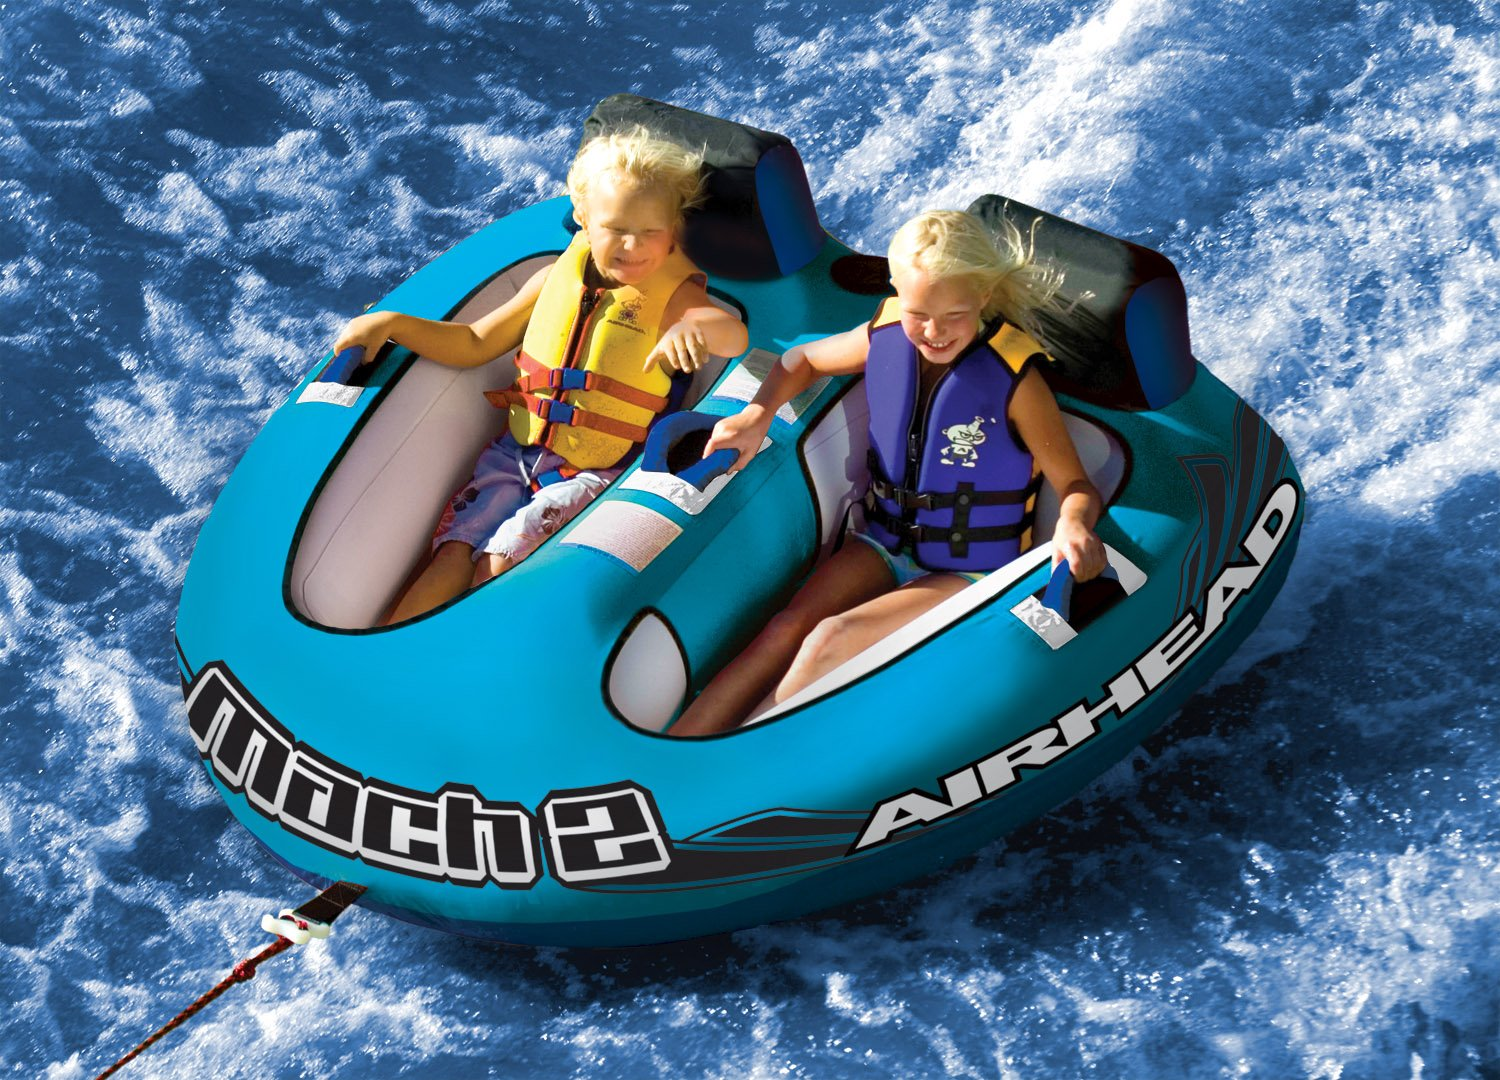 Airhead Towable Tubes Reviews in Current Market